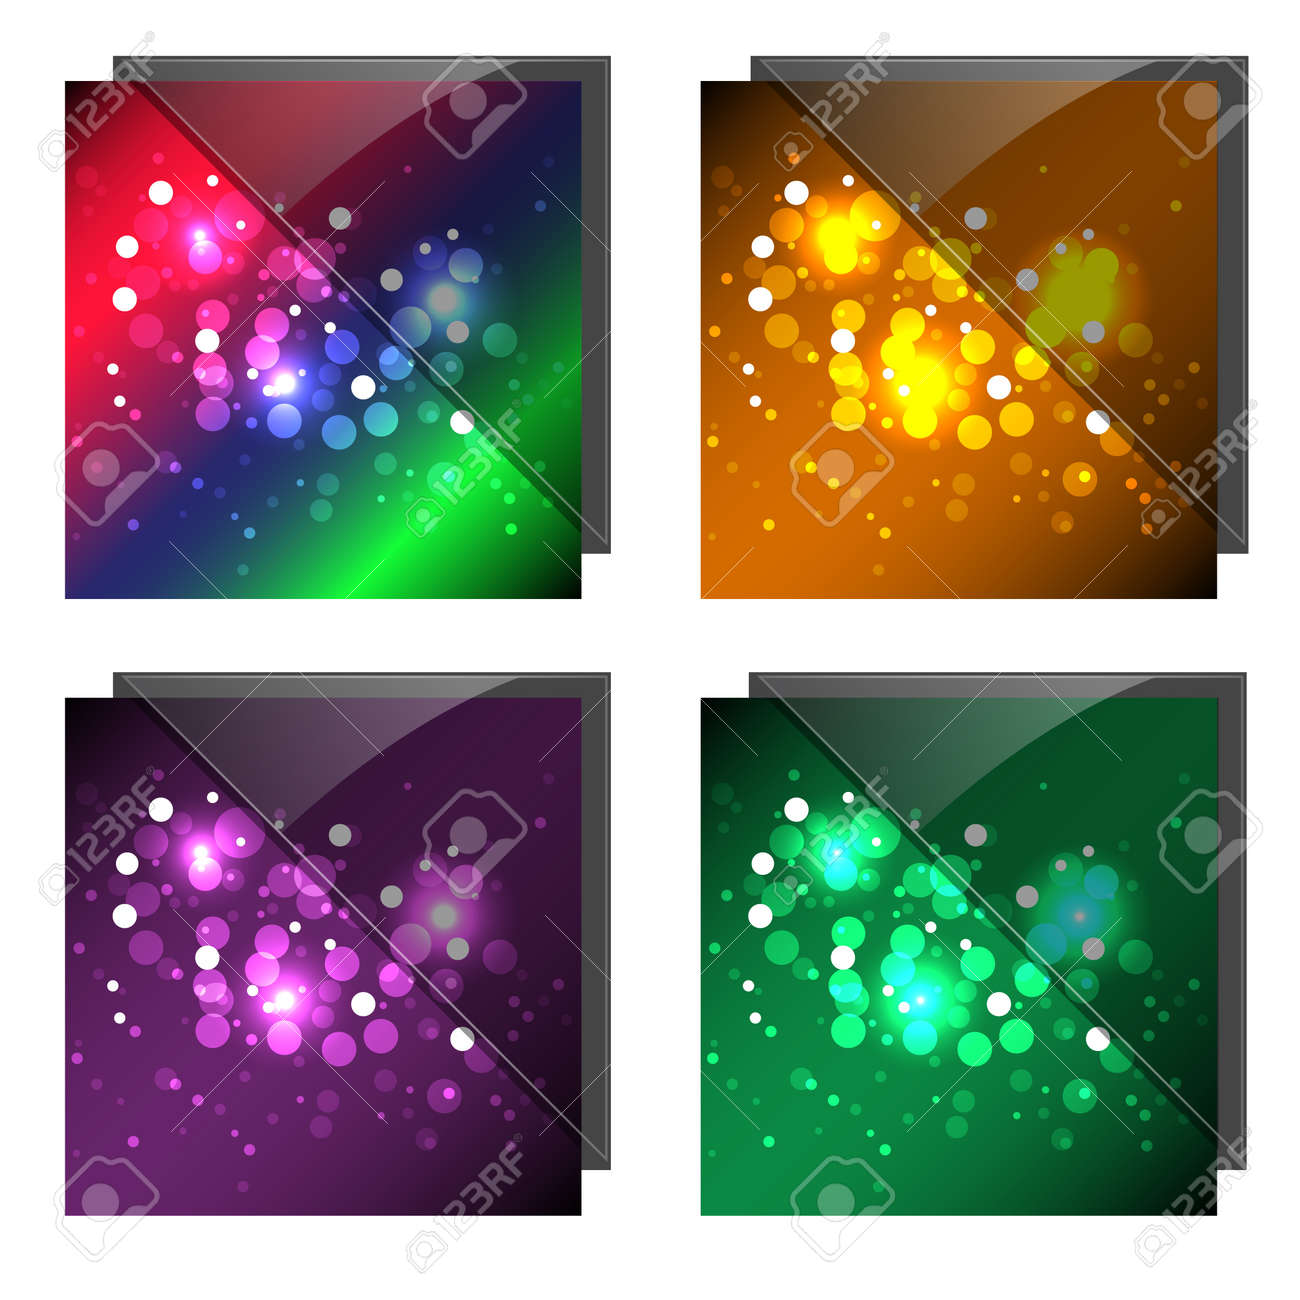 Sparkling Colorful Backgrounds With Glass Stock Vector - 10310355